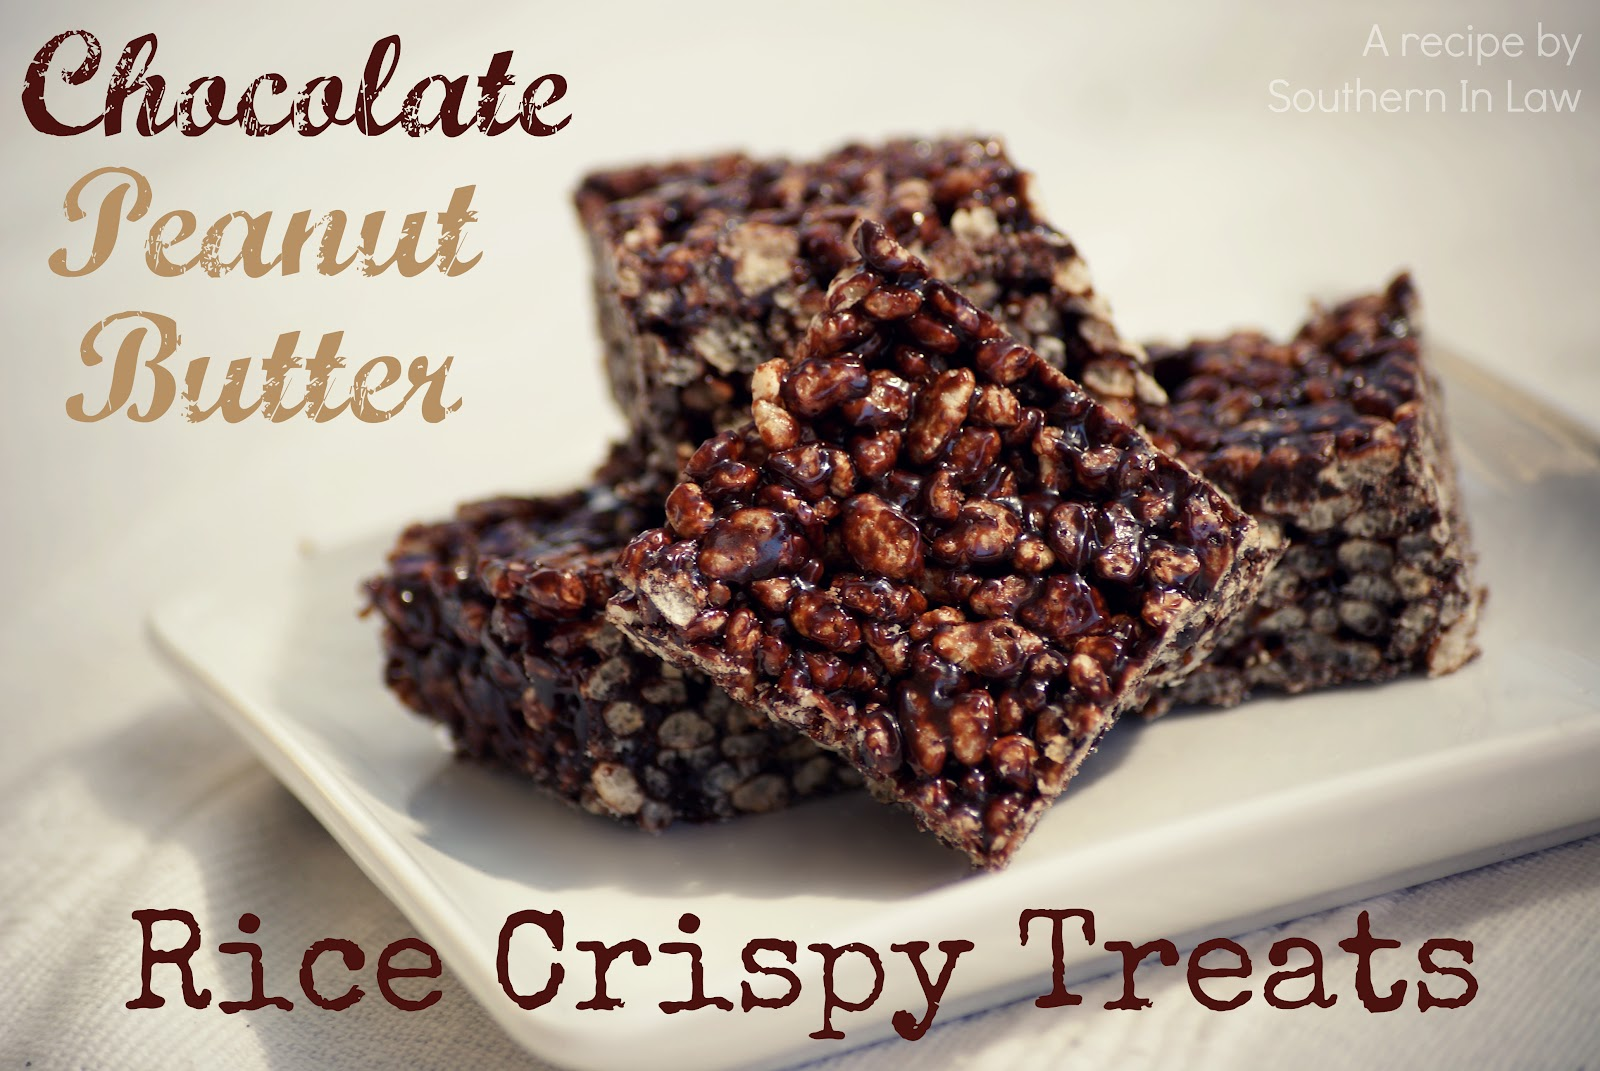 Southern In Law: Recipe: Chocolate Peanut Butter Rice Crispy Treats